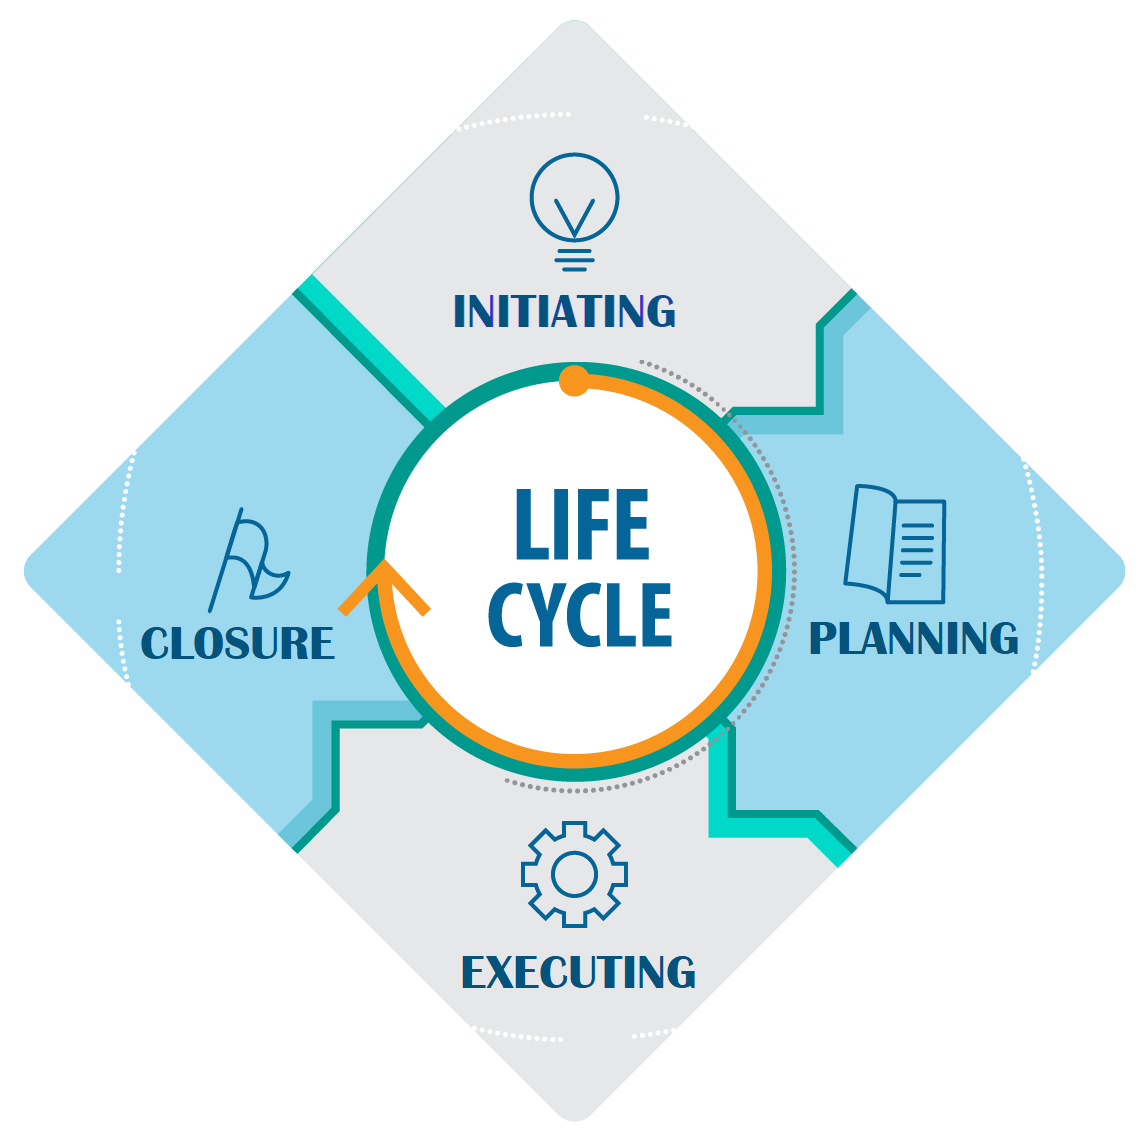 Life Cycle Project Management Life Cycle Edureka Project Management Project Success Life Cycles